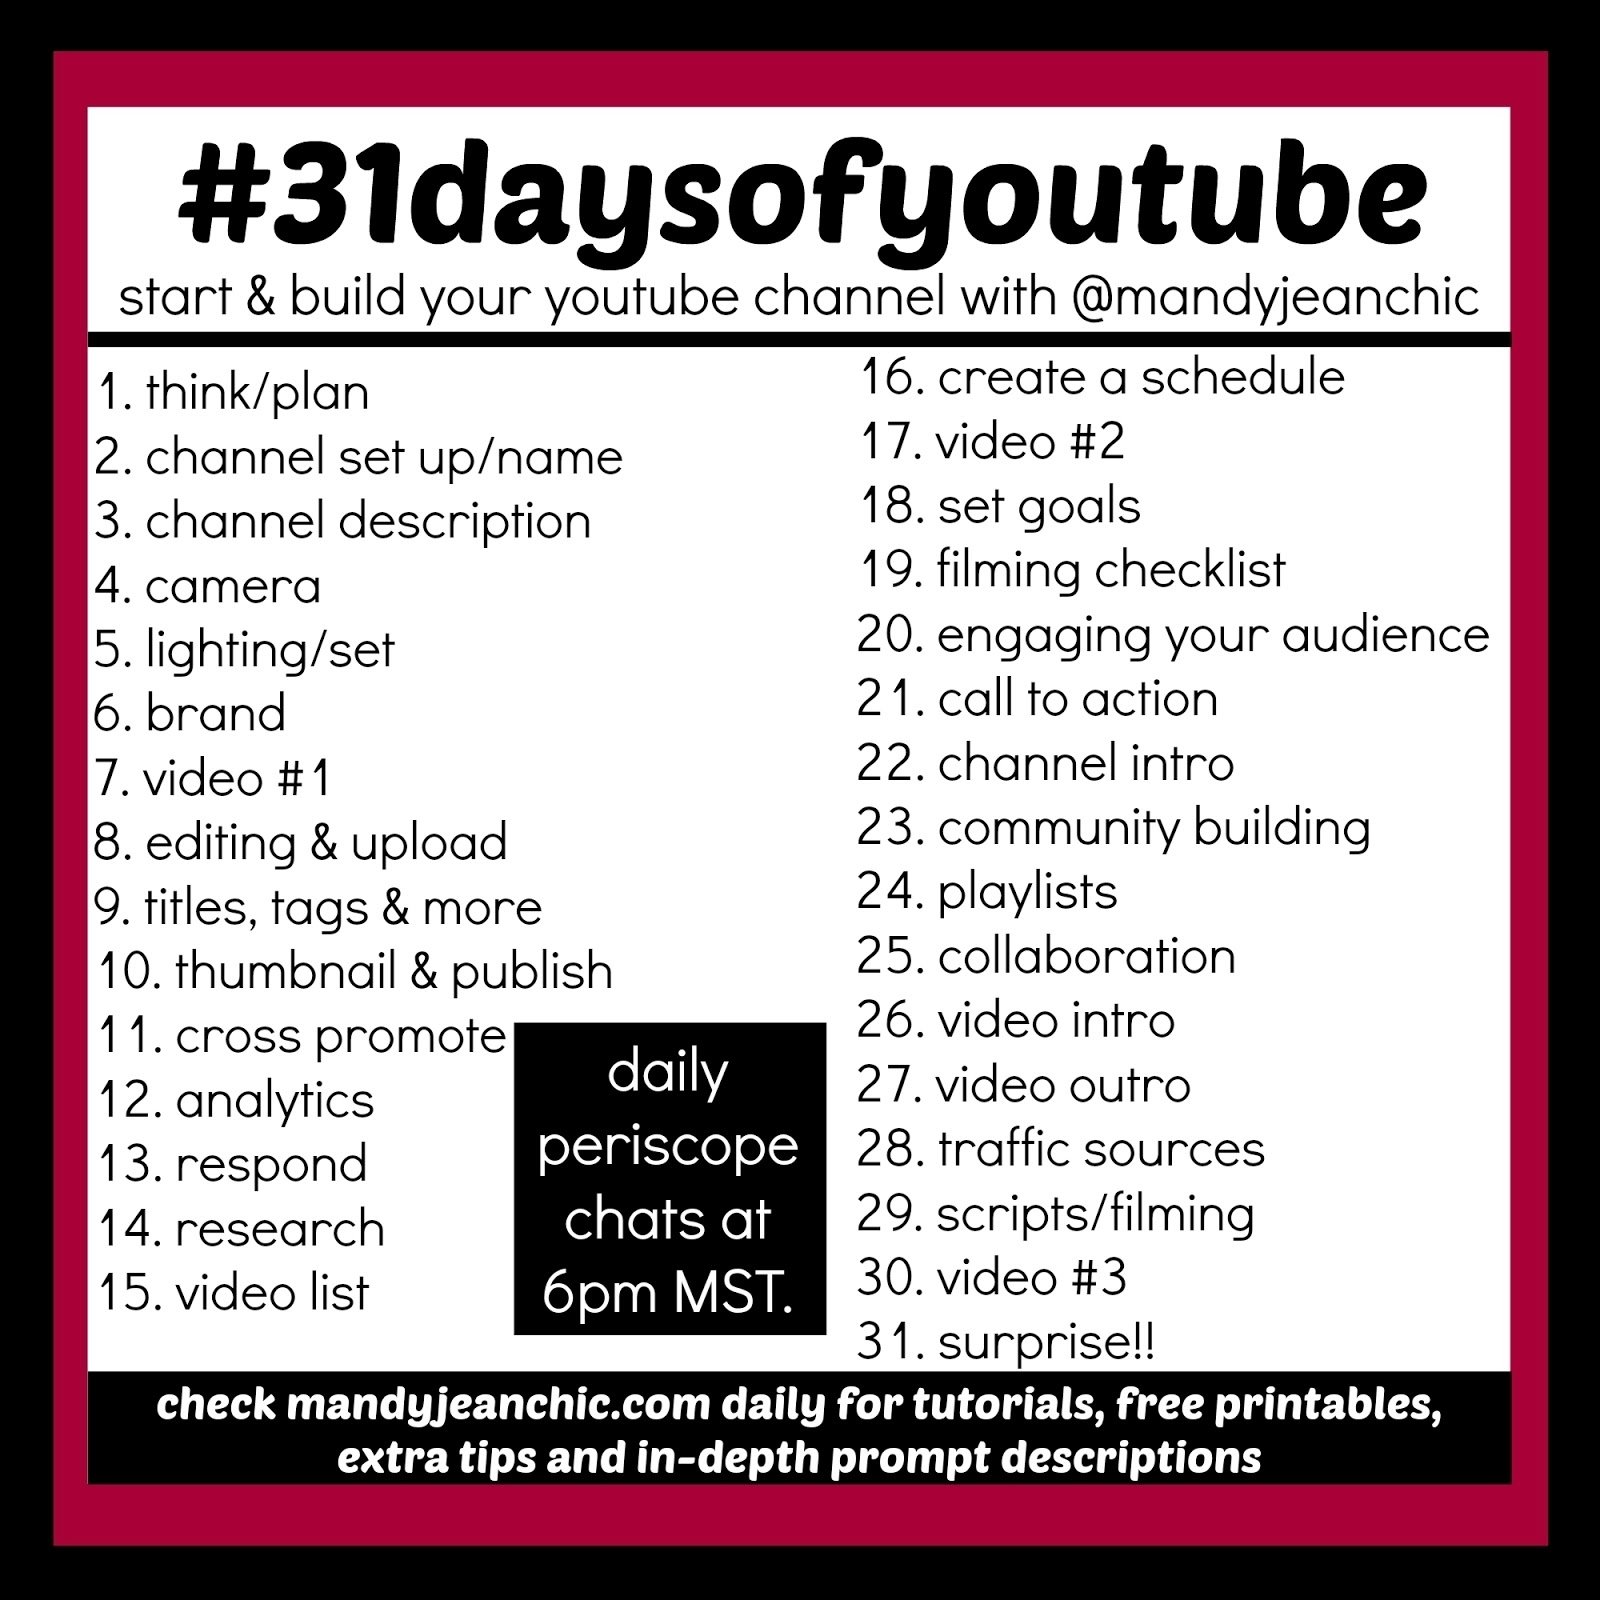 mandy jean chic: #31daysofyoutube-day 2- channel set up/name